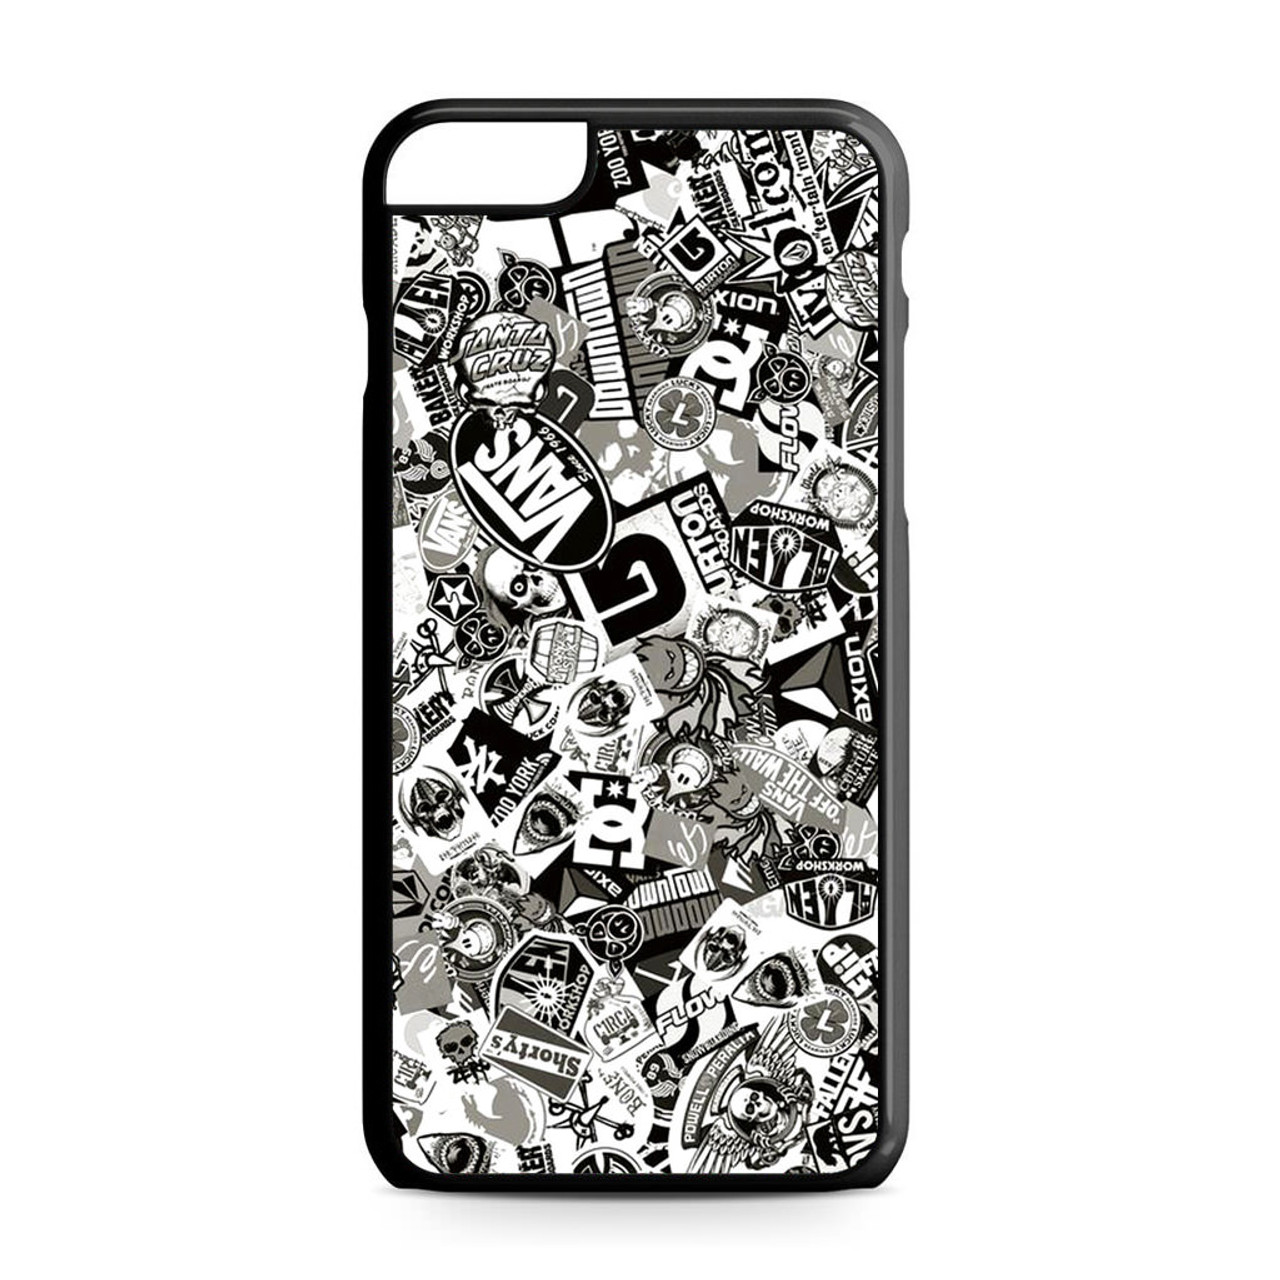 ff0879eae7c2 Stickerbomb Skate Dub Vans BW iPhone 6 Plus 6S Plus Case - CASESHUNTER